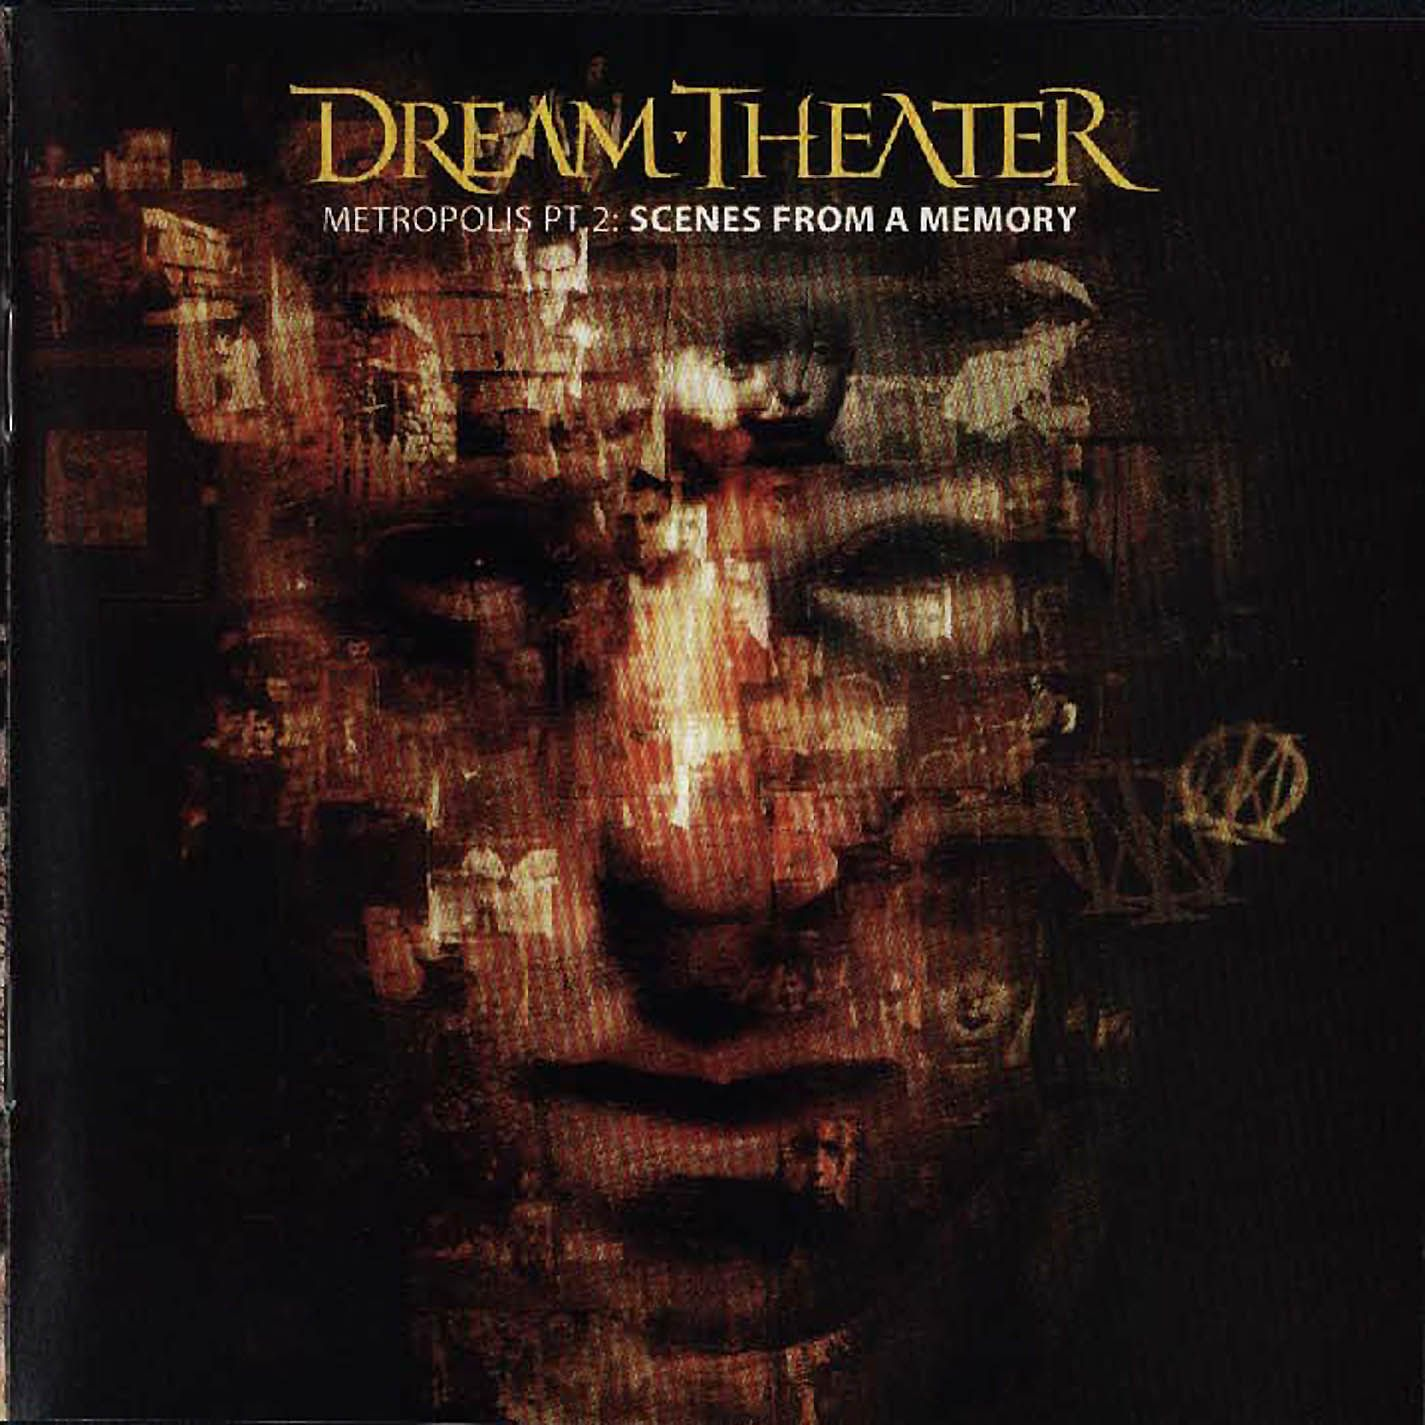 436 Best Dream Theaters Images On Pinterest: Scenes From A Memory - Dream Theater